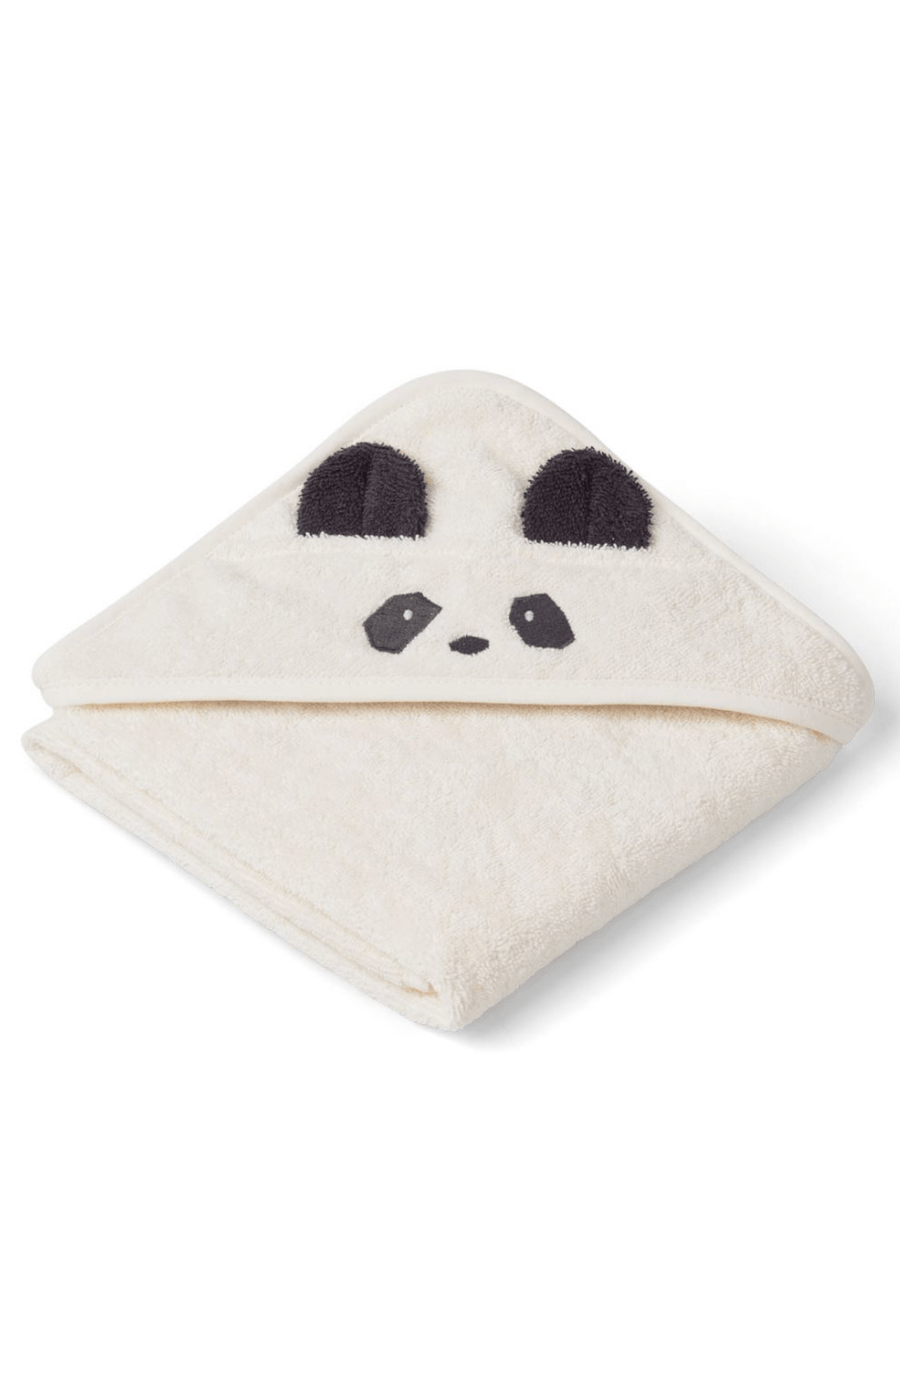 Liewood Albert Hooded Baby Towel - Panda